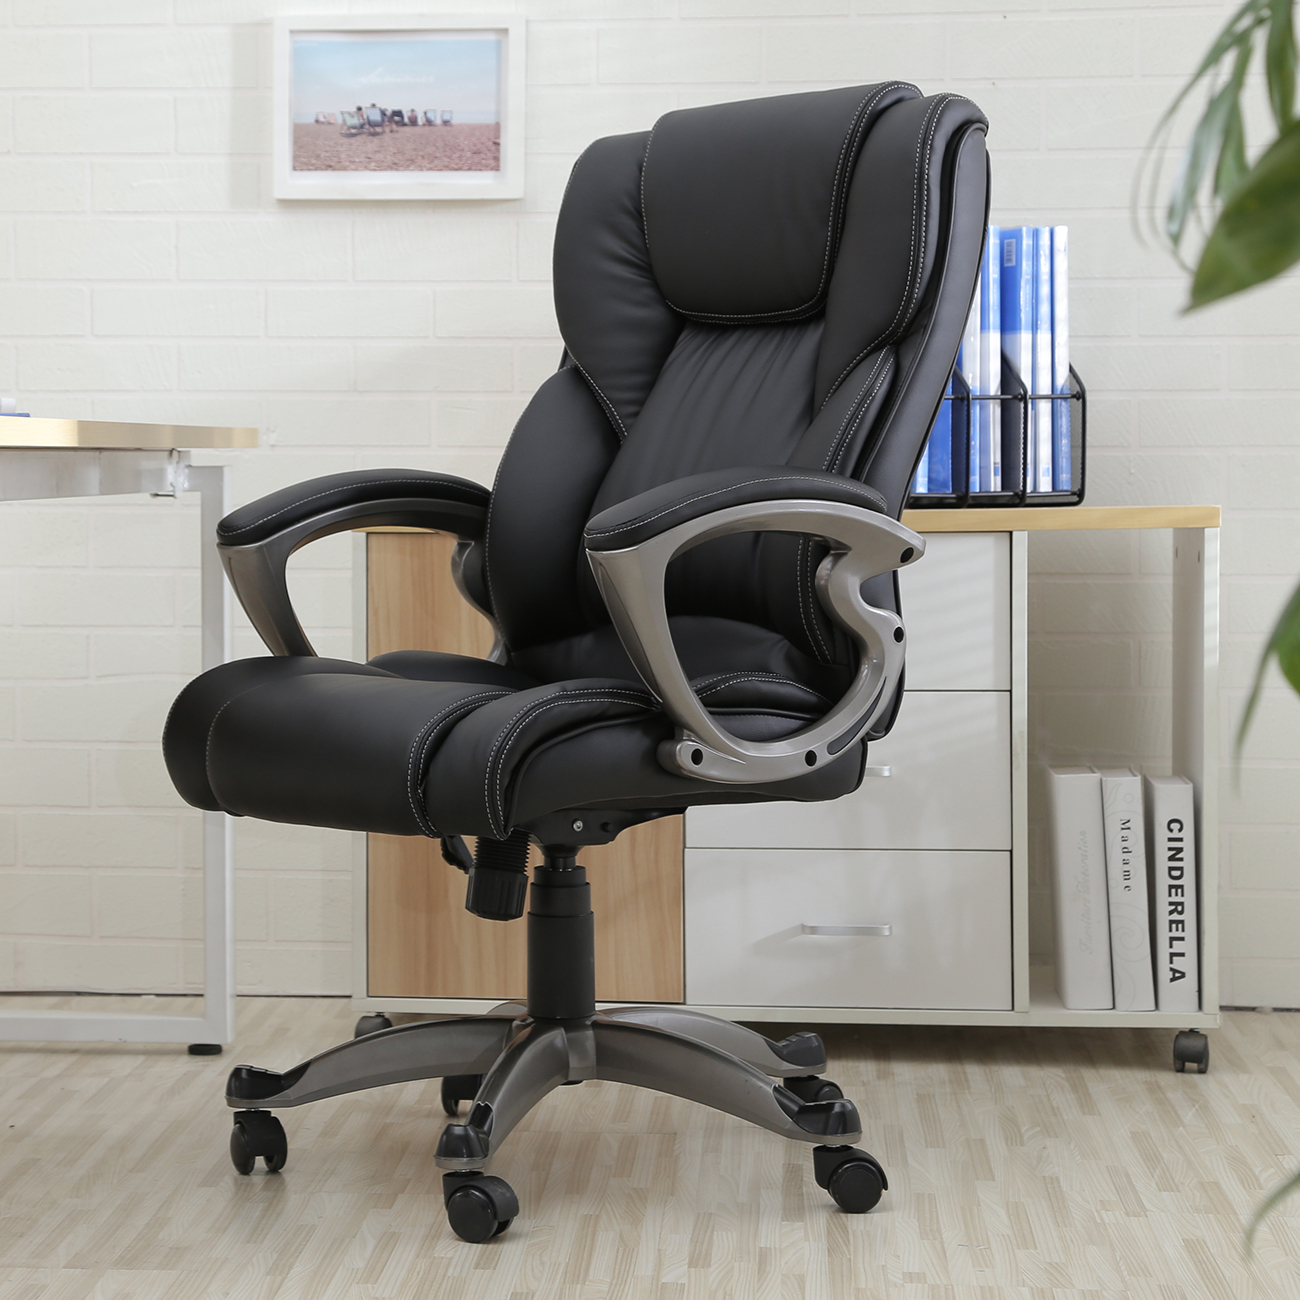 Ergonomic Work Chairs Black Pu Leather High Back Office Chair Executive Task